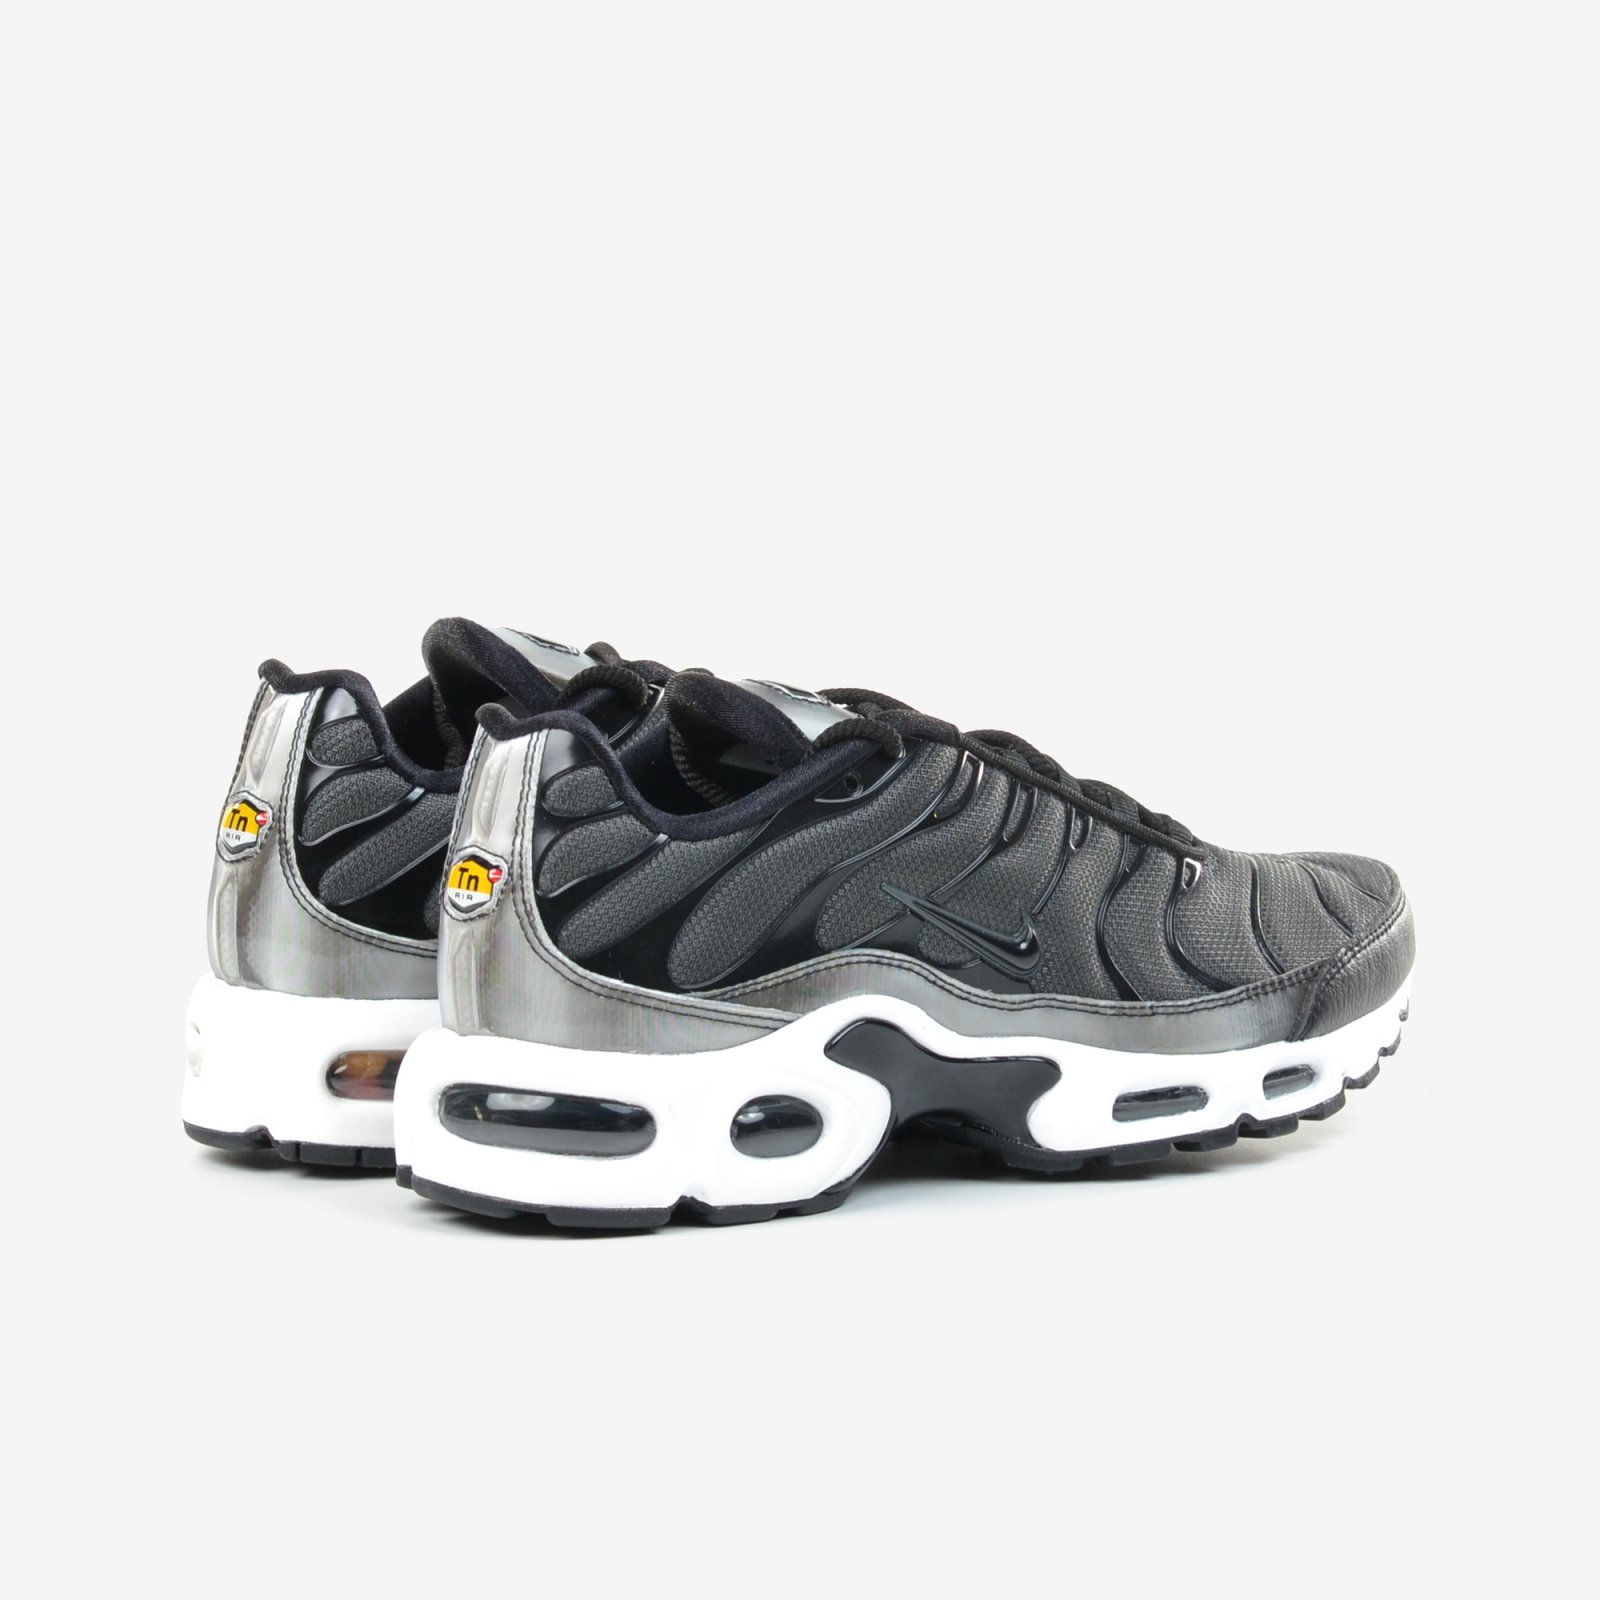 07722989186 Details about Nike Women s Air Max Plus SE Black Anthracite White Running  Shoes 862201-003